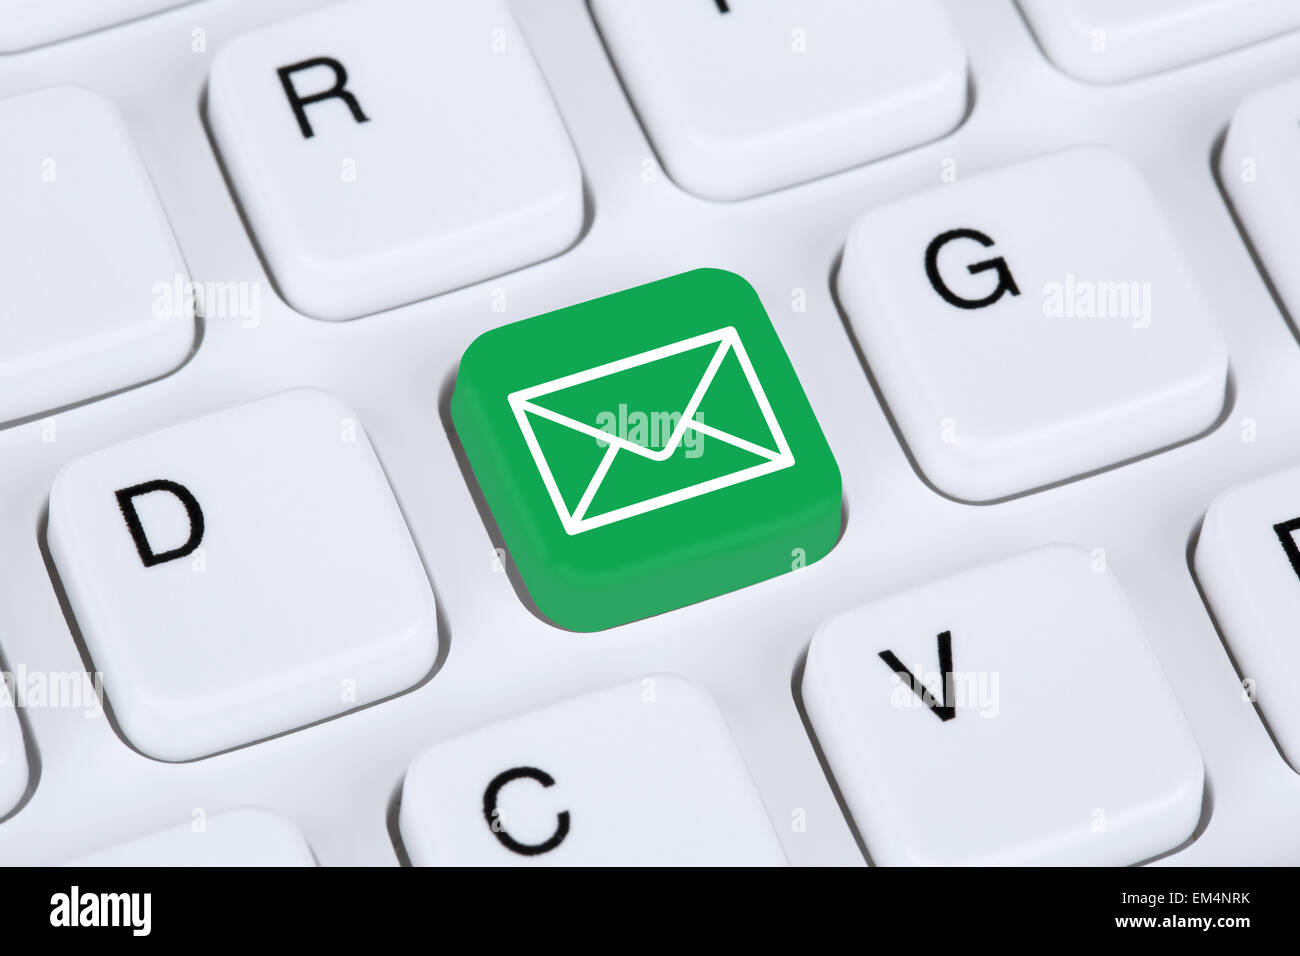 Sending E-Mail via internet on computer keyboard with letter symbol - Stock Image